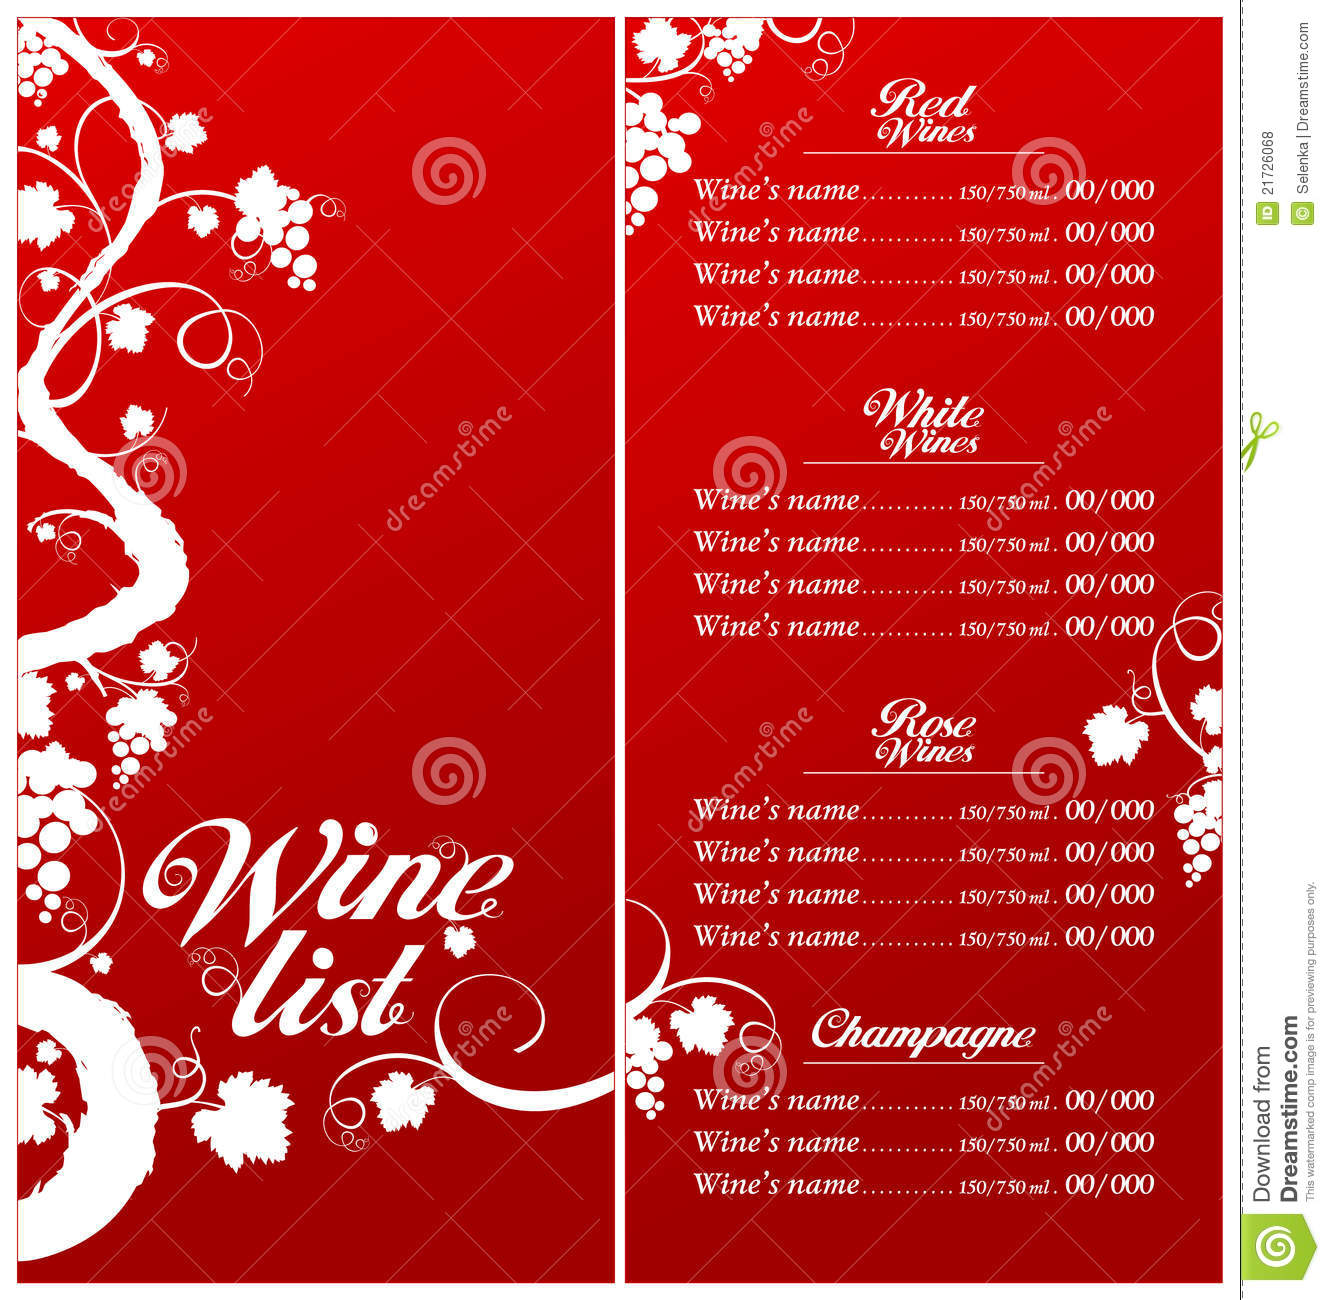 wine list menu template royalty free stock photos image 21726068. Black Bedroom Furniture Sets. Home Design Ideas